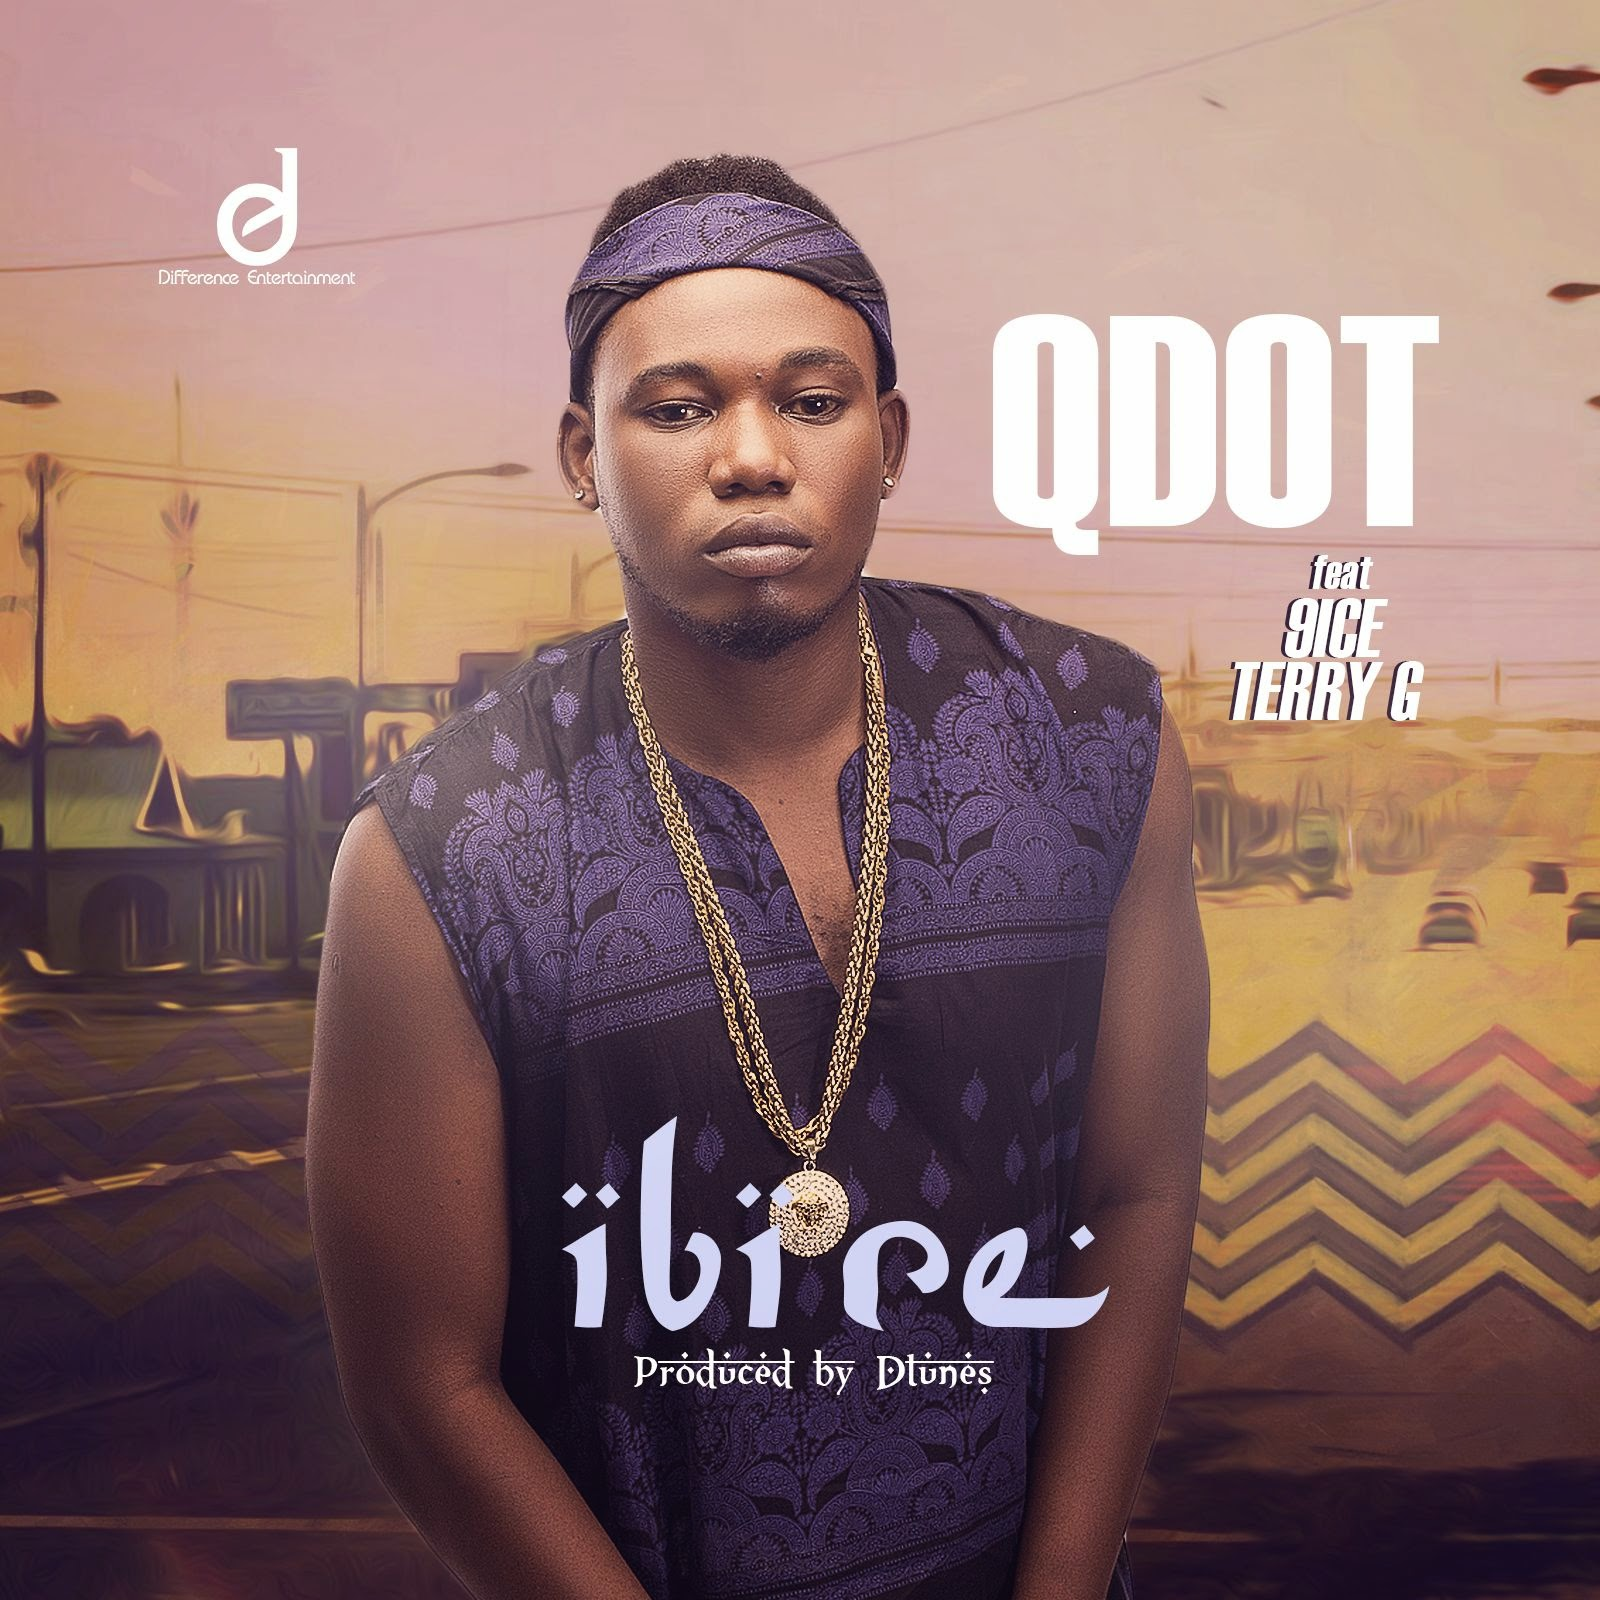 MediaHauz Entertainment: Qdot - Ibi re ft 9ice + Terry G